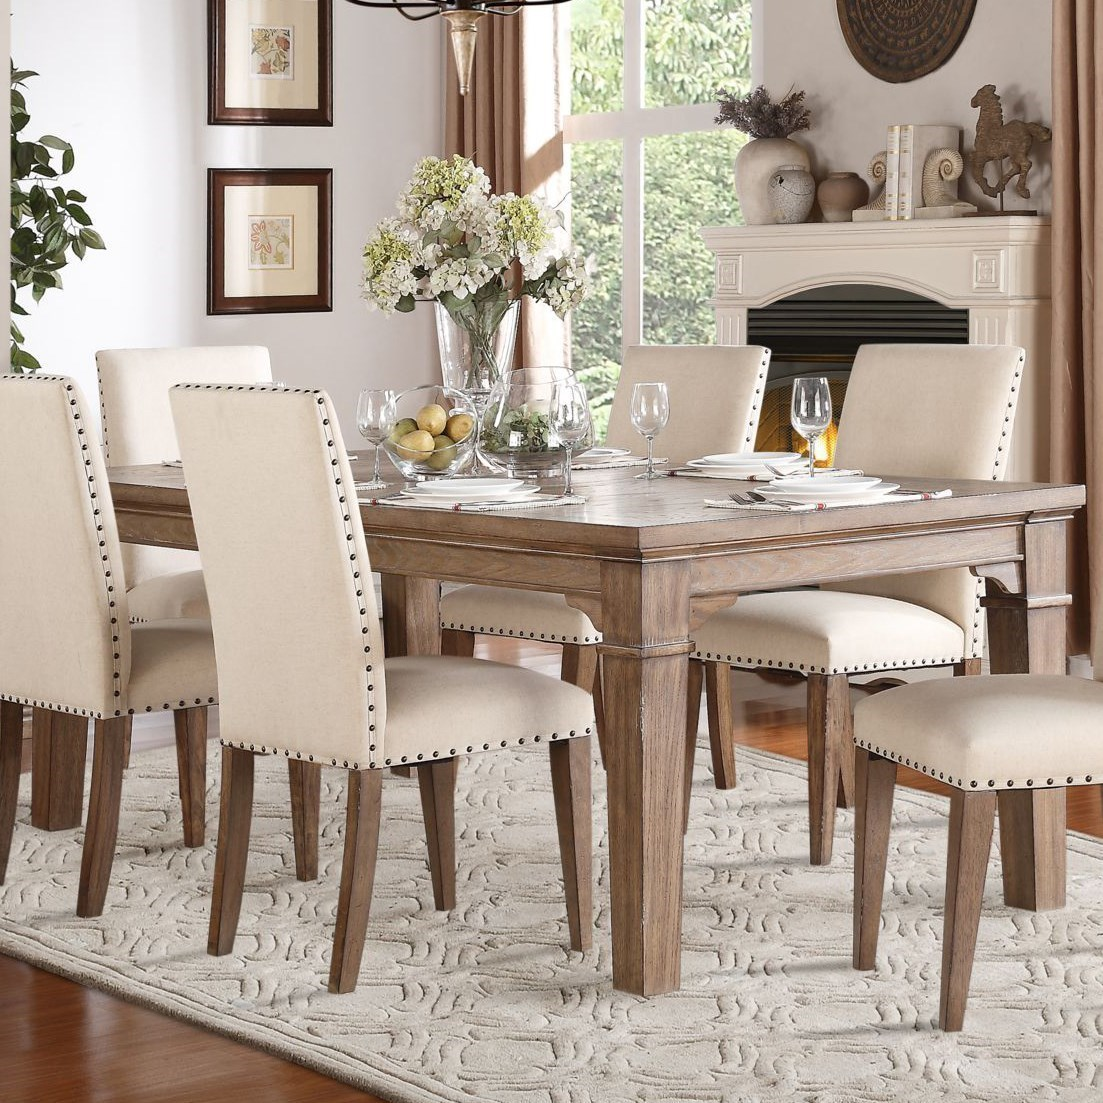 84 dining table glass top homelegance mill valley relaxed vintage dining table with weathered look 510884 northeast factory